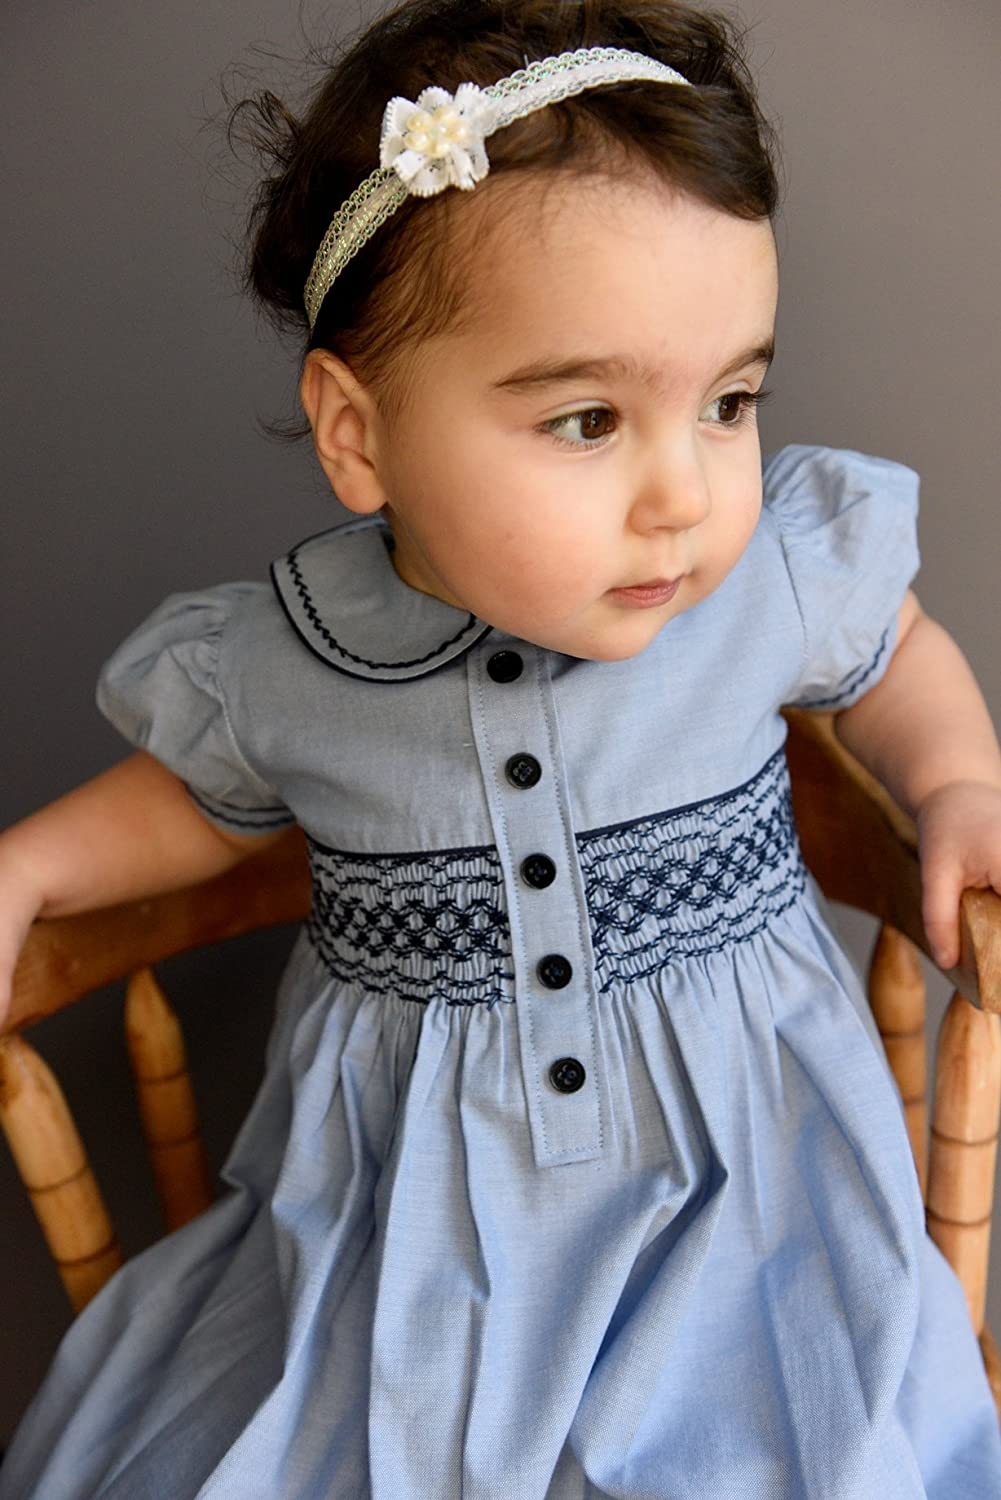 Kids 1950s Clothing & Costumes: Girls, Boys, Toddlers Carriage Boutique's Baby Girls Light Blue Short Sleeve Dress $45.00 AT vintagedancer.com